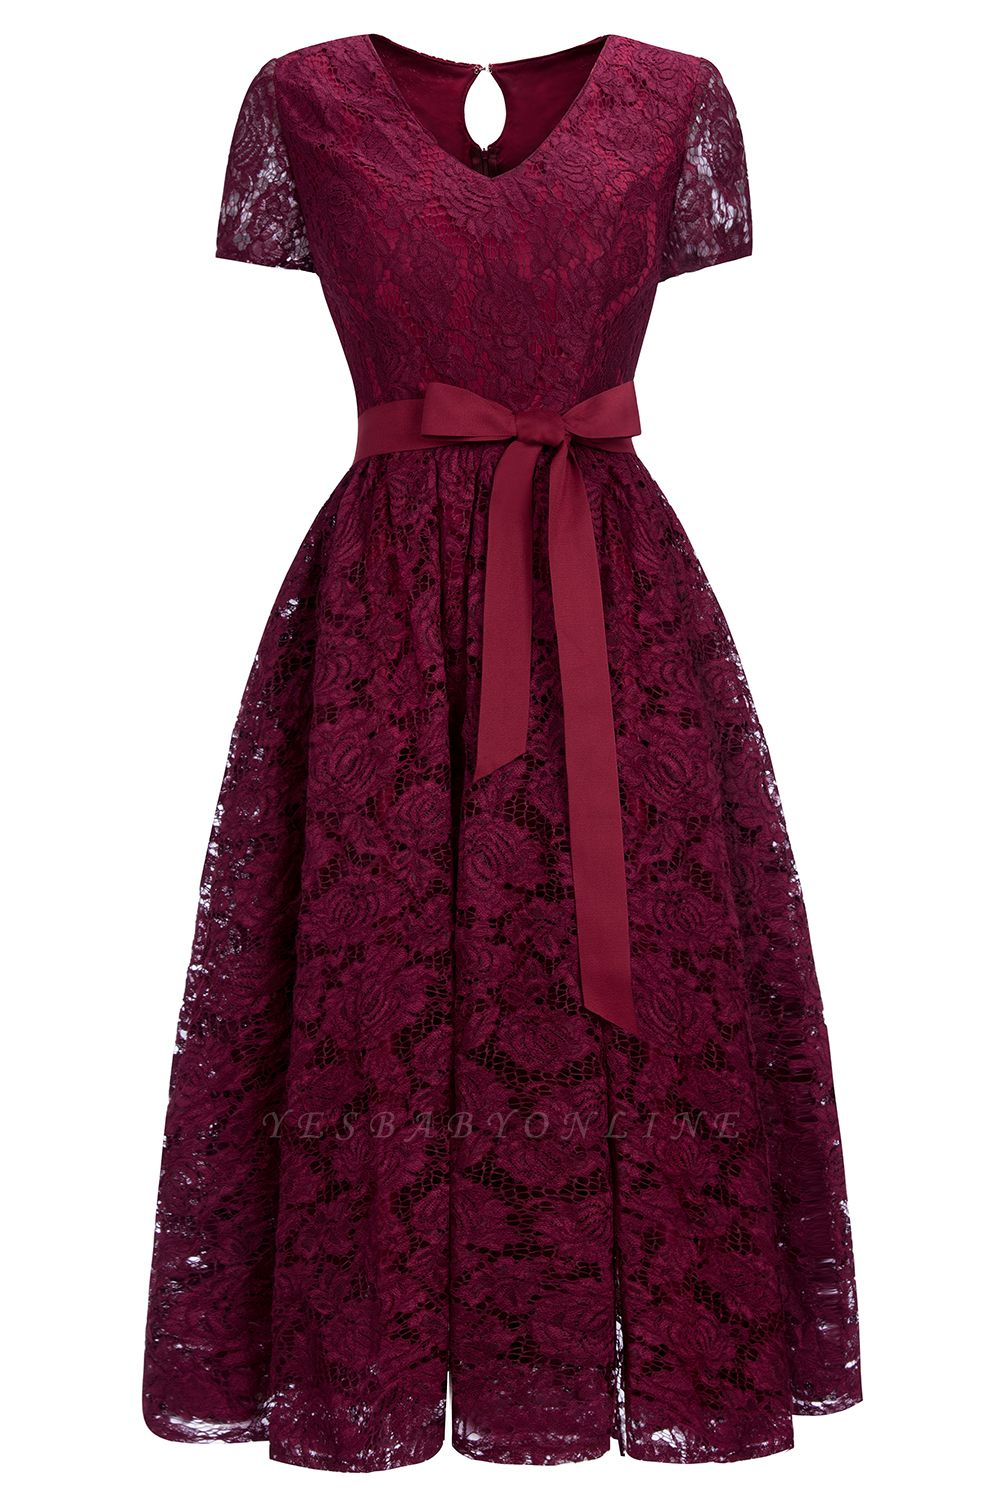 Cheap Burgundy Short Sleeves Flower Lace V-neck Dress with Sash in Stock